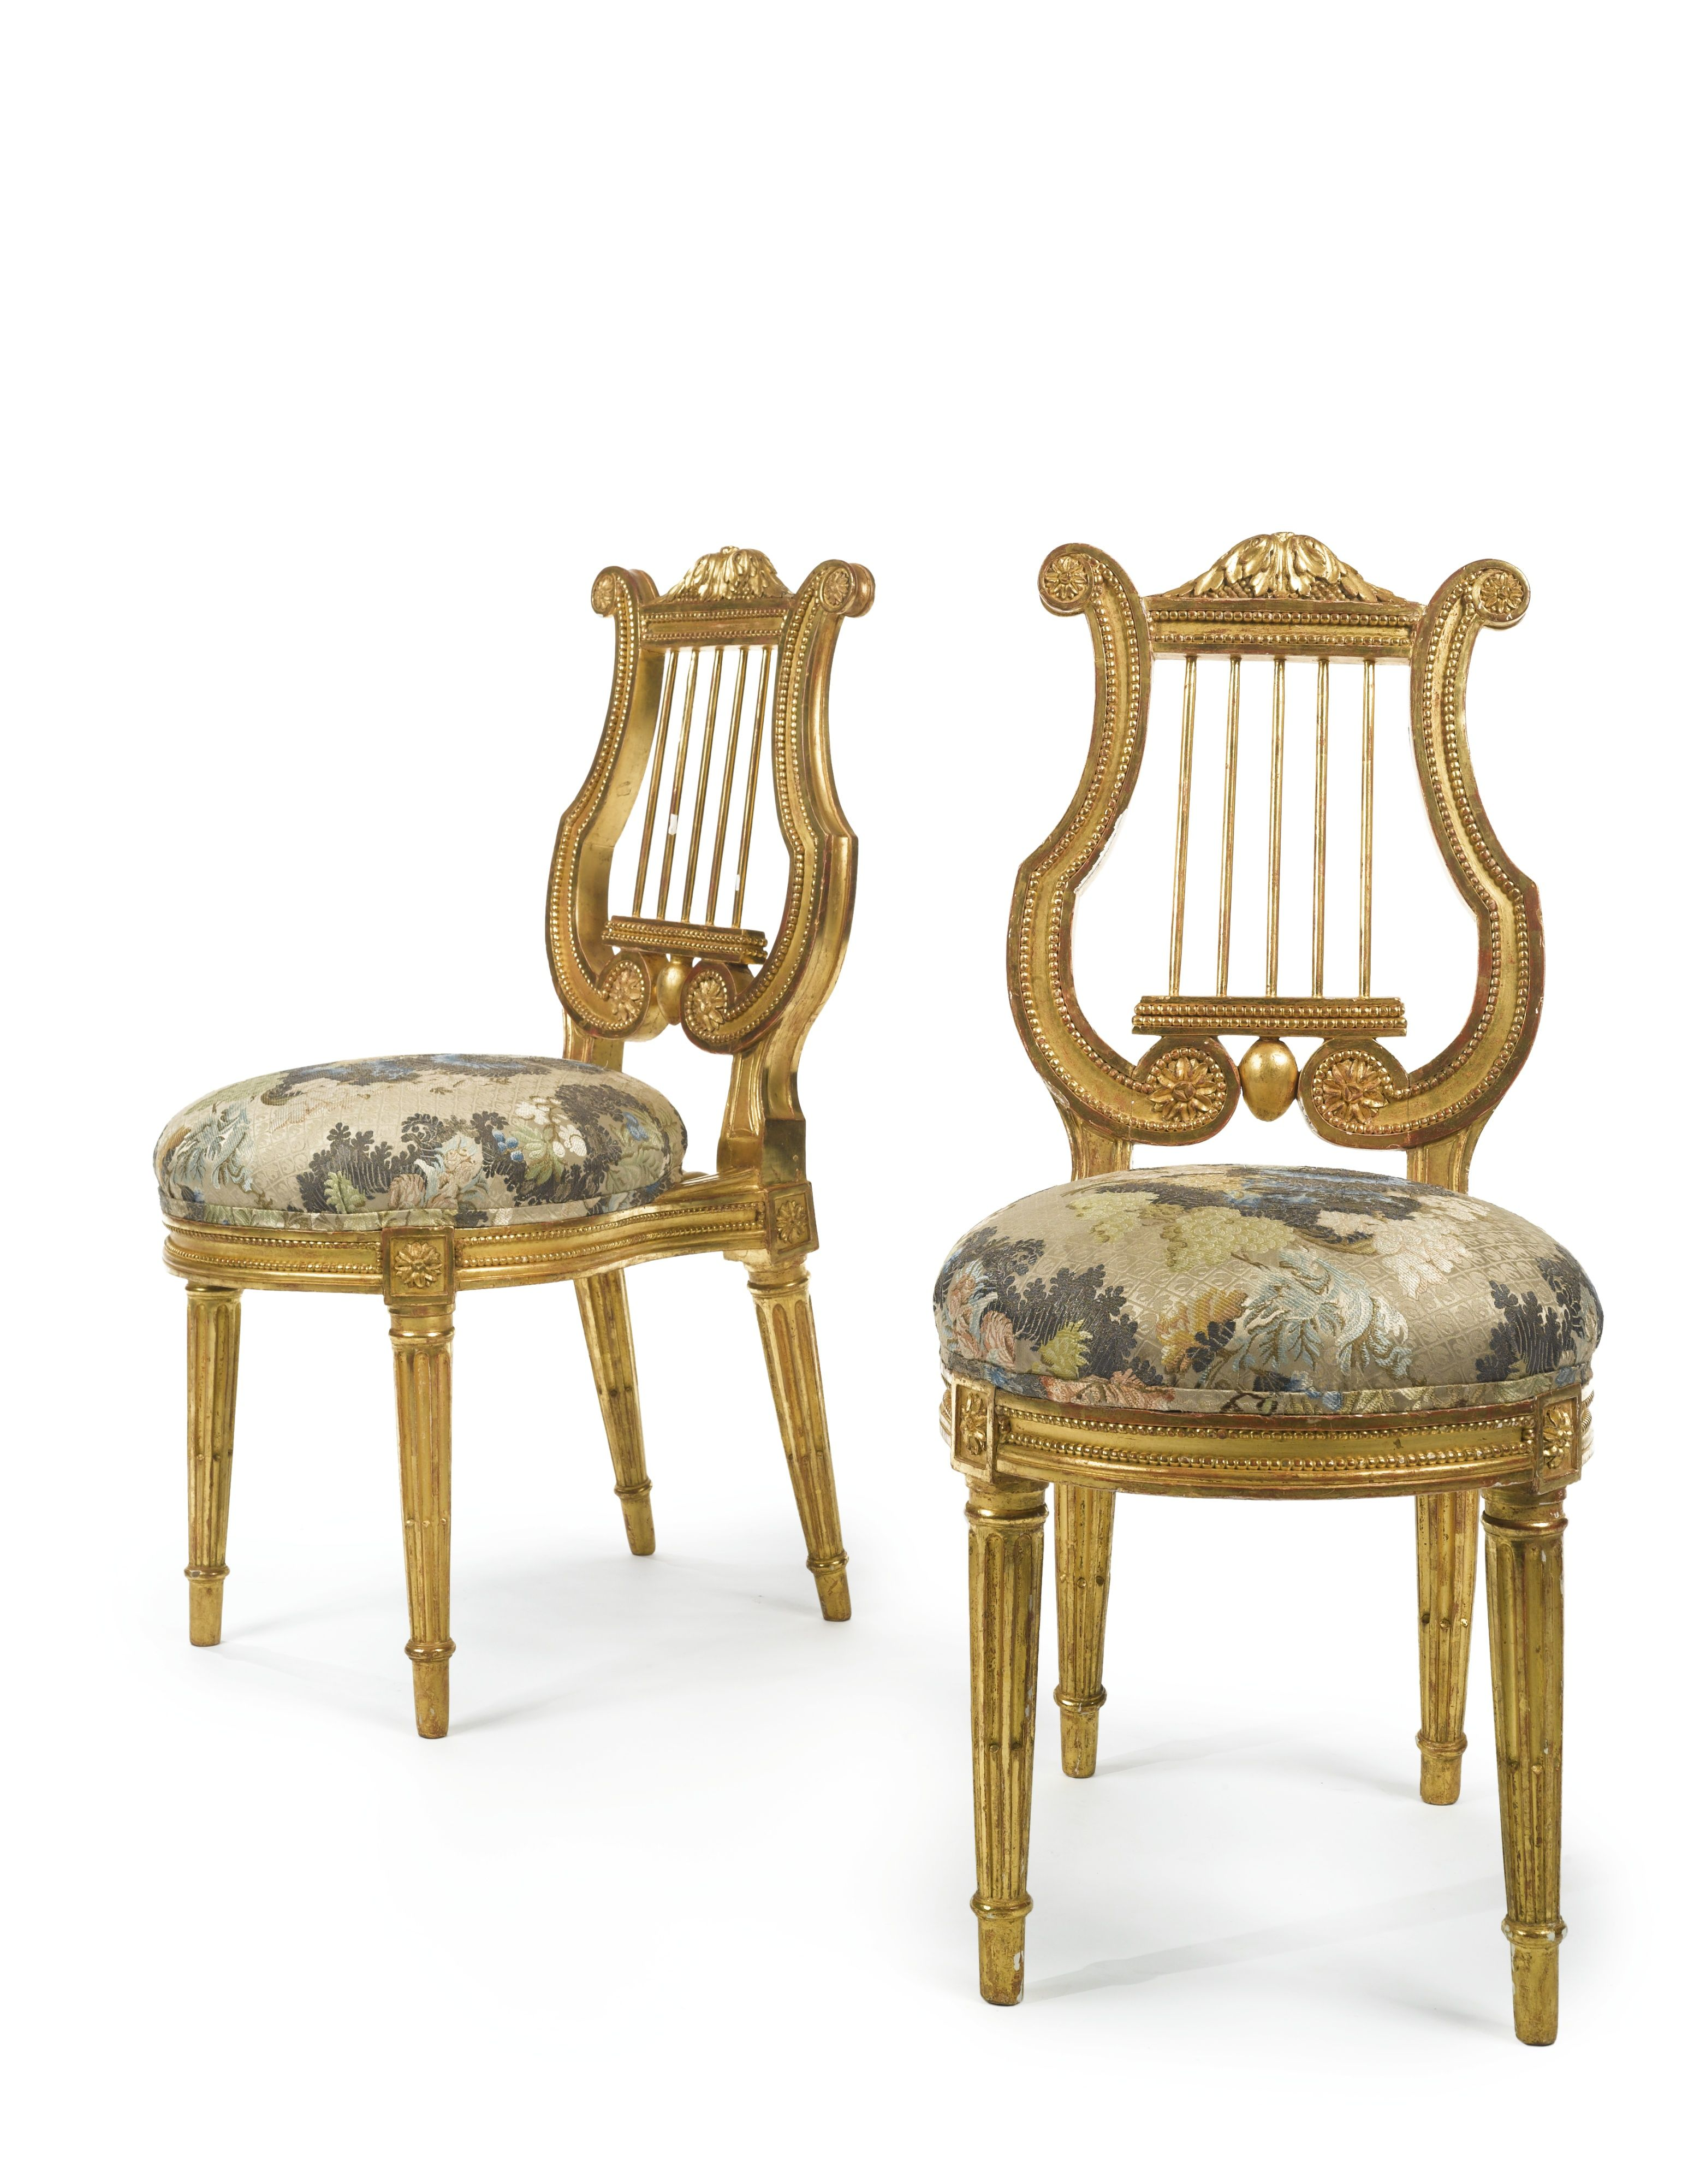 A PAIR OF LOUIS XVI CARVED GILTWOOD CHAIRS circa 1780, stamped L. Delanois. Louis Delanois (1731-1792), maître in 1761 height 34 1/4 in. 87 cm. Estimate  12,000 — 18,000  USD  LOT SOLD. 13,750 USD